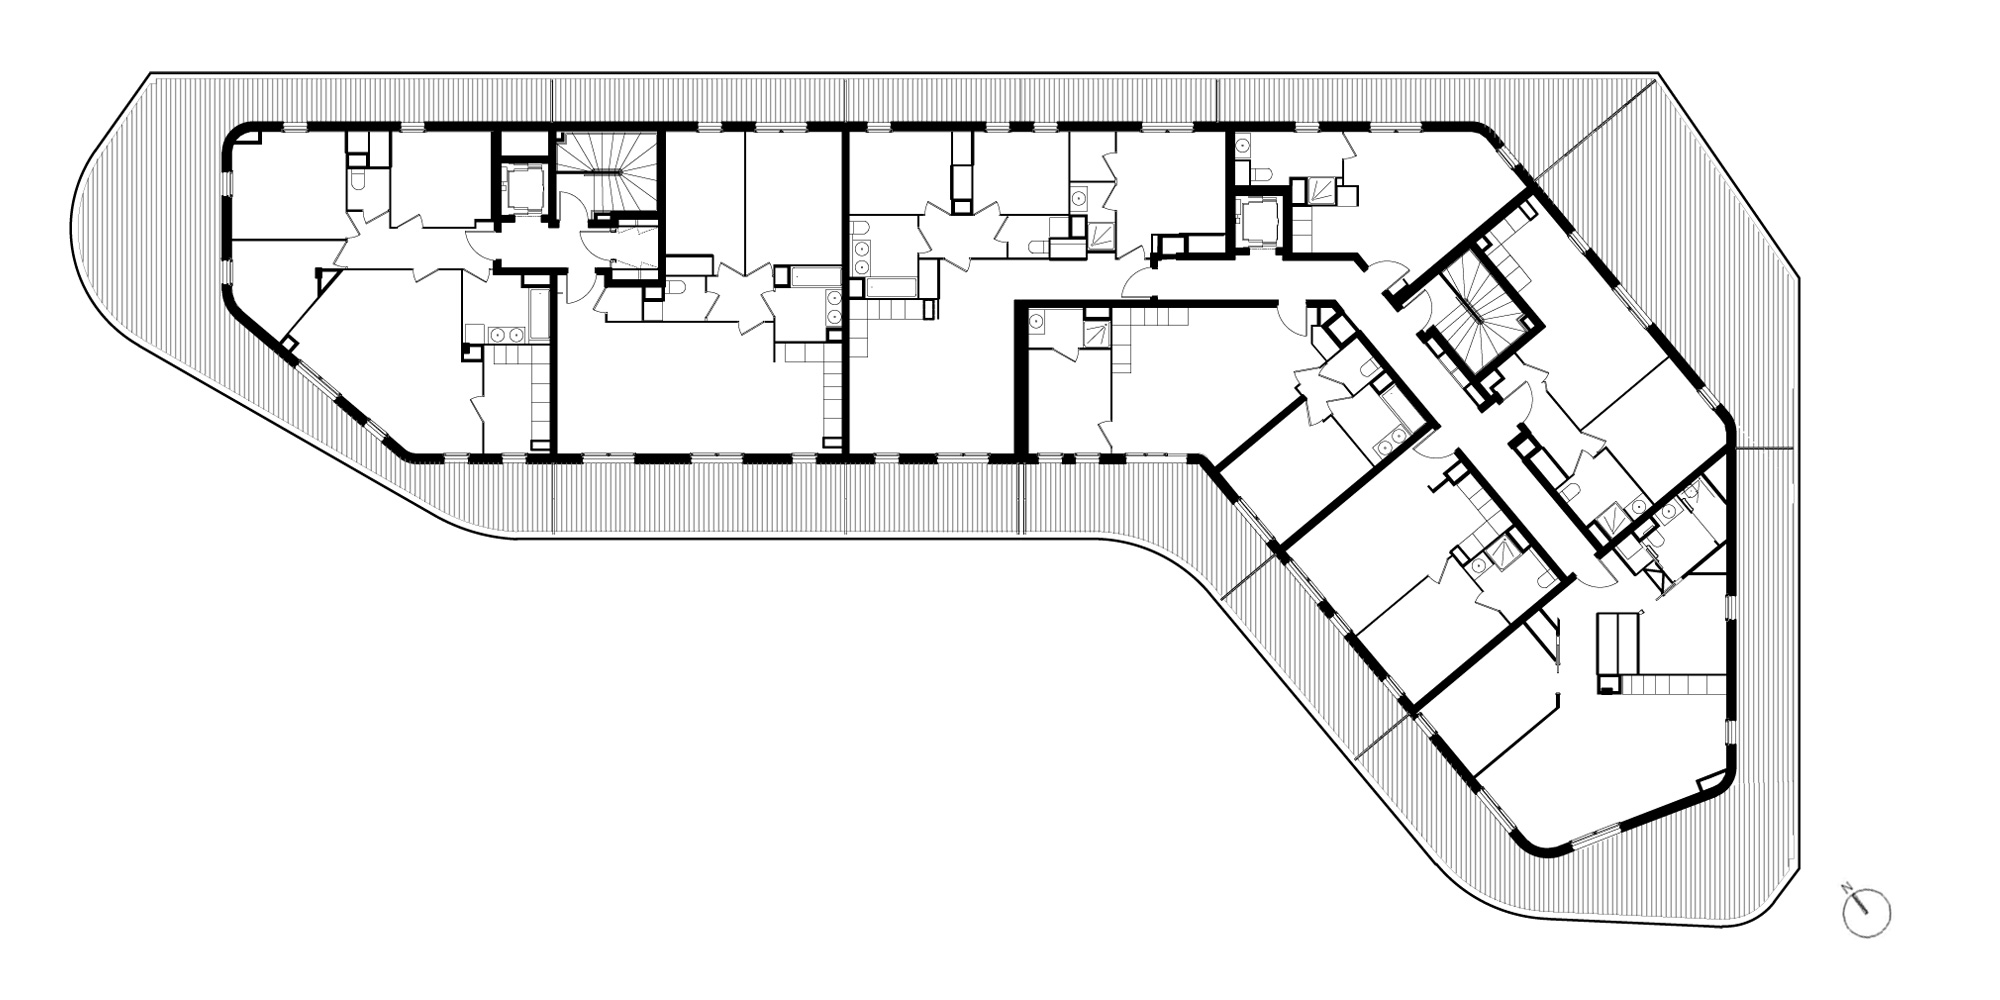 Attic Plan © PietriArchitectes